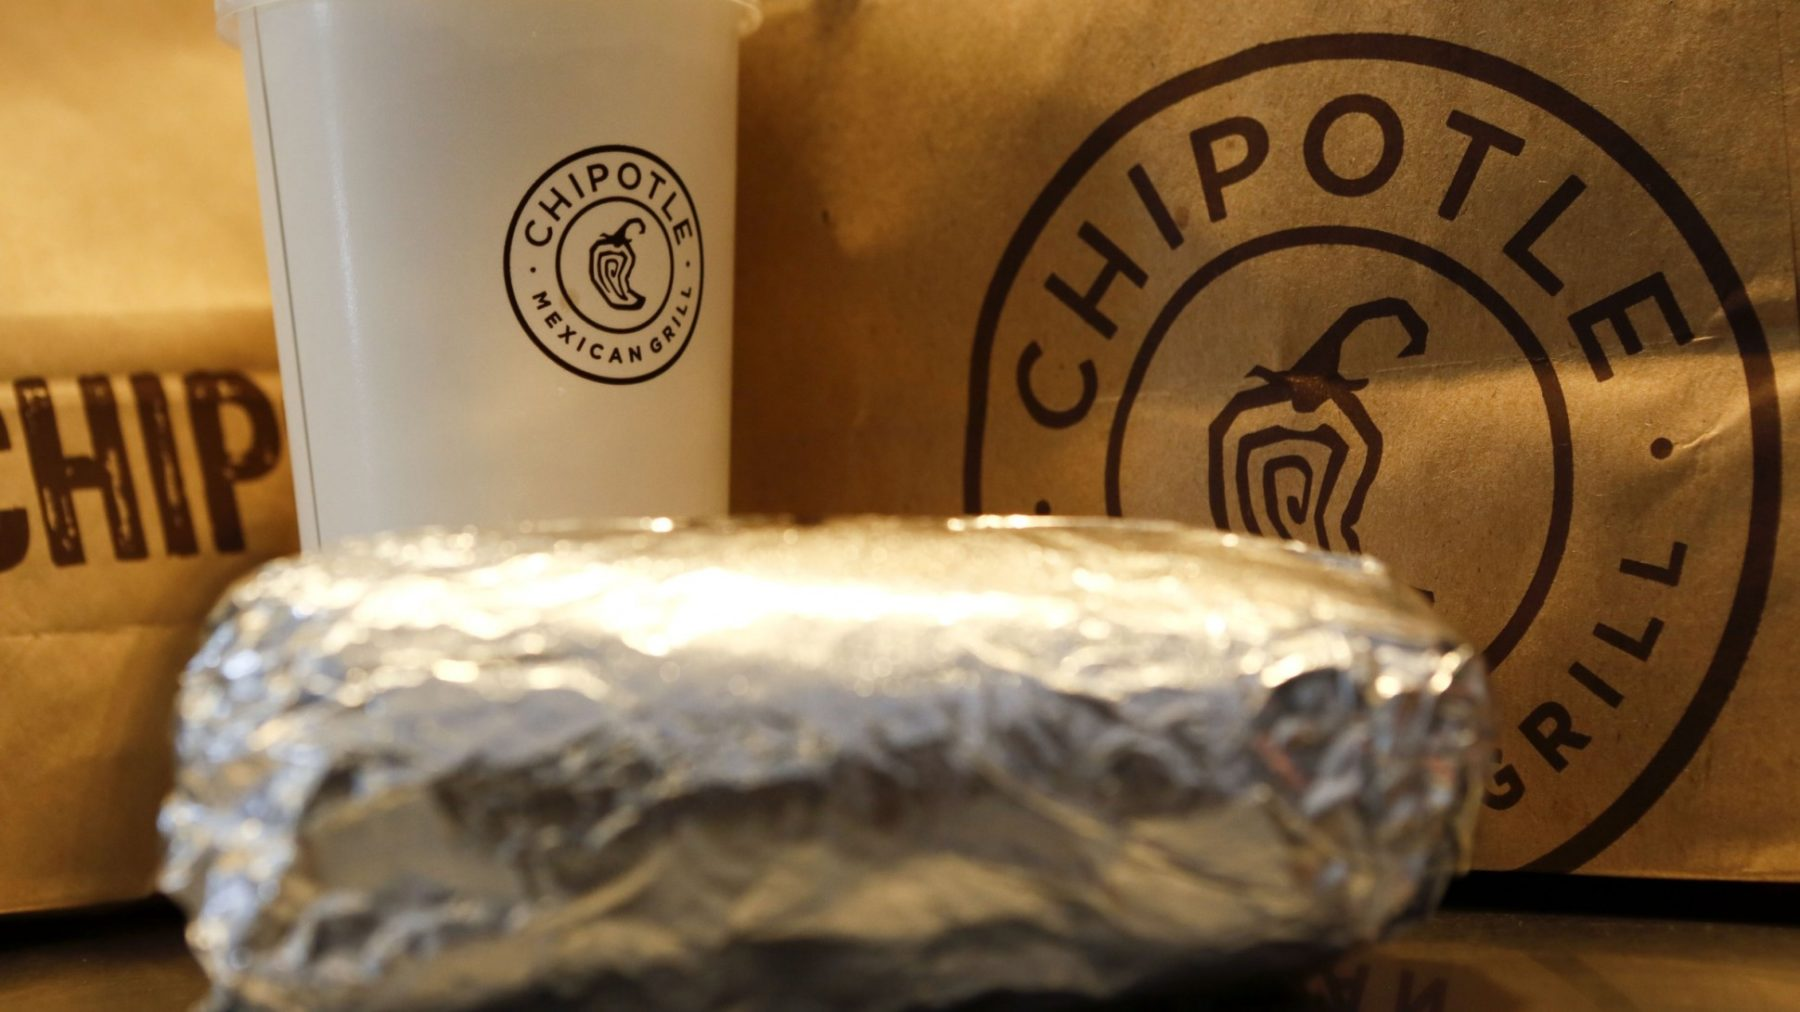 Chipotle customers report illness after eating at LA unit